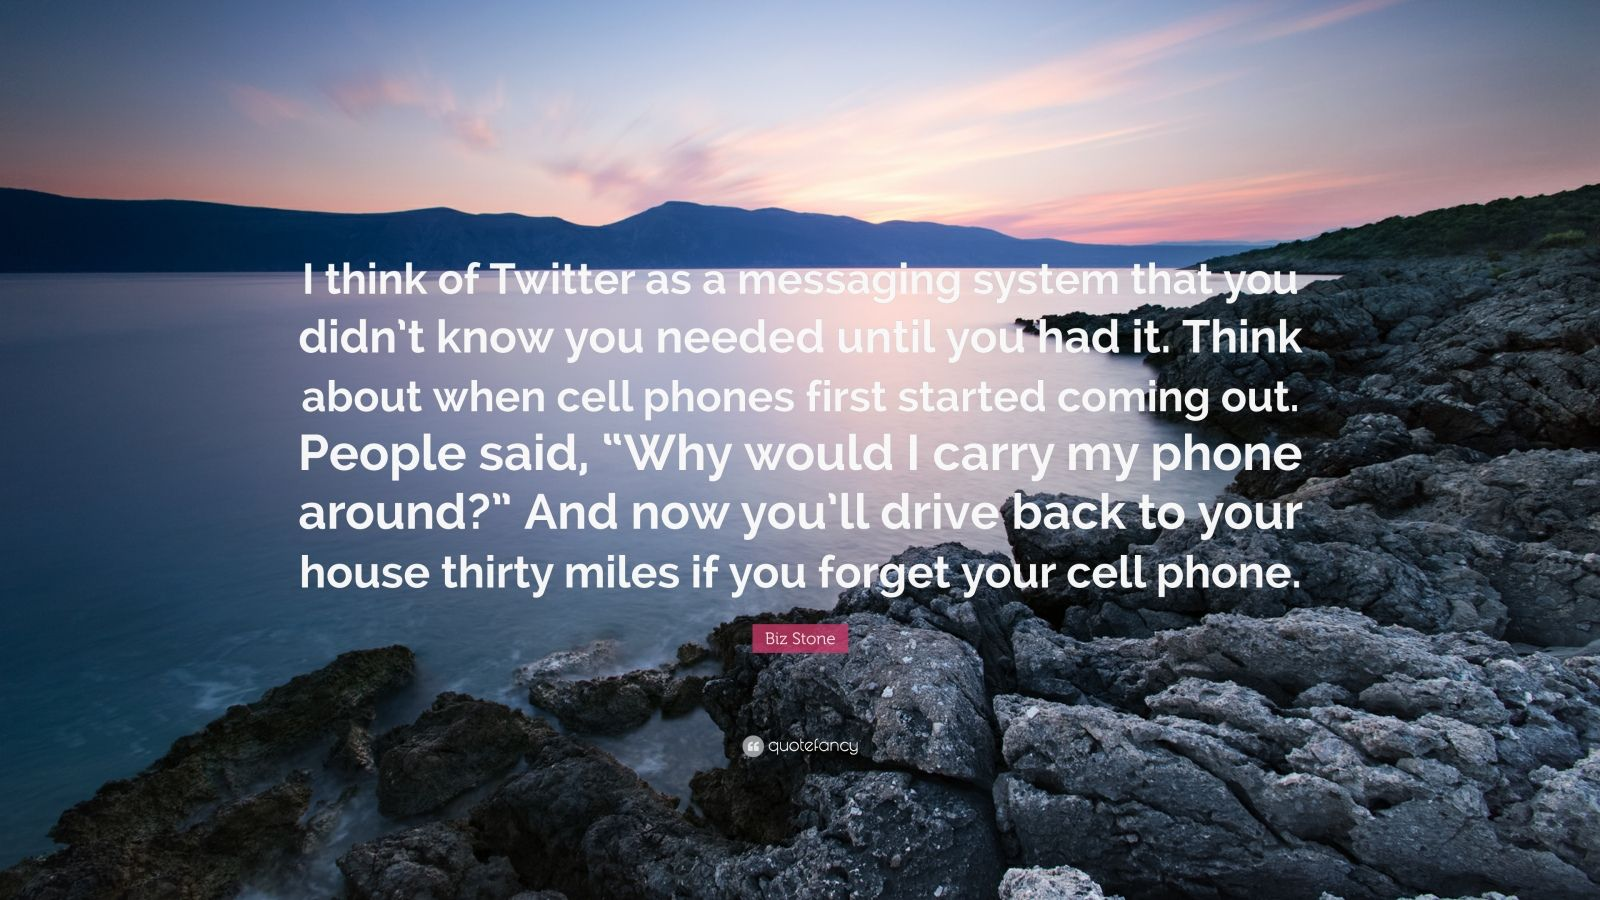 """Biz Stone Quote: """"I think of Twitter as a messaging system that you didn't know you needed until you had it. Think about when cell phones first started coming out. People said, """"Why would I carry my phone around?"""" And now you'll drive back to your house thirty miles if you forget your cell phone."""""""